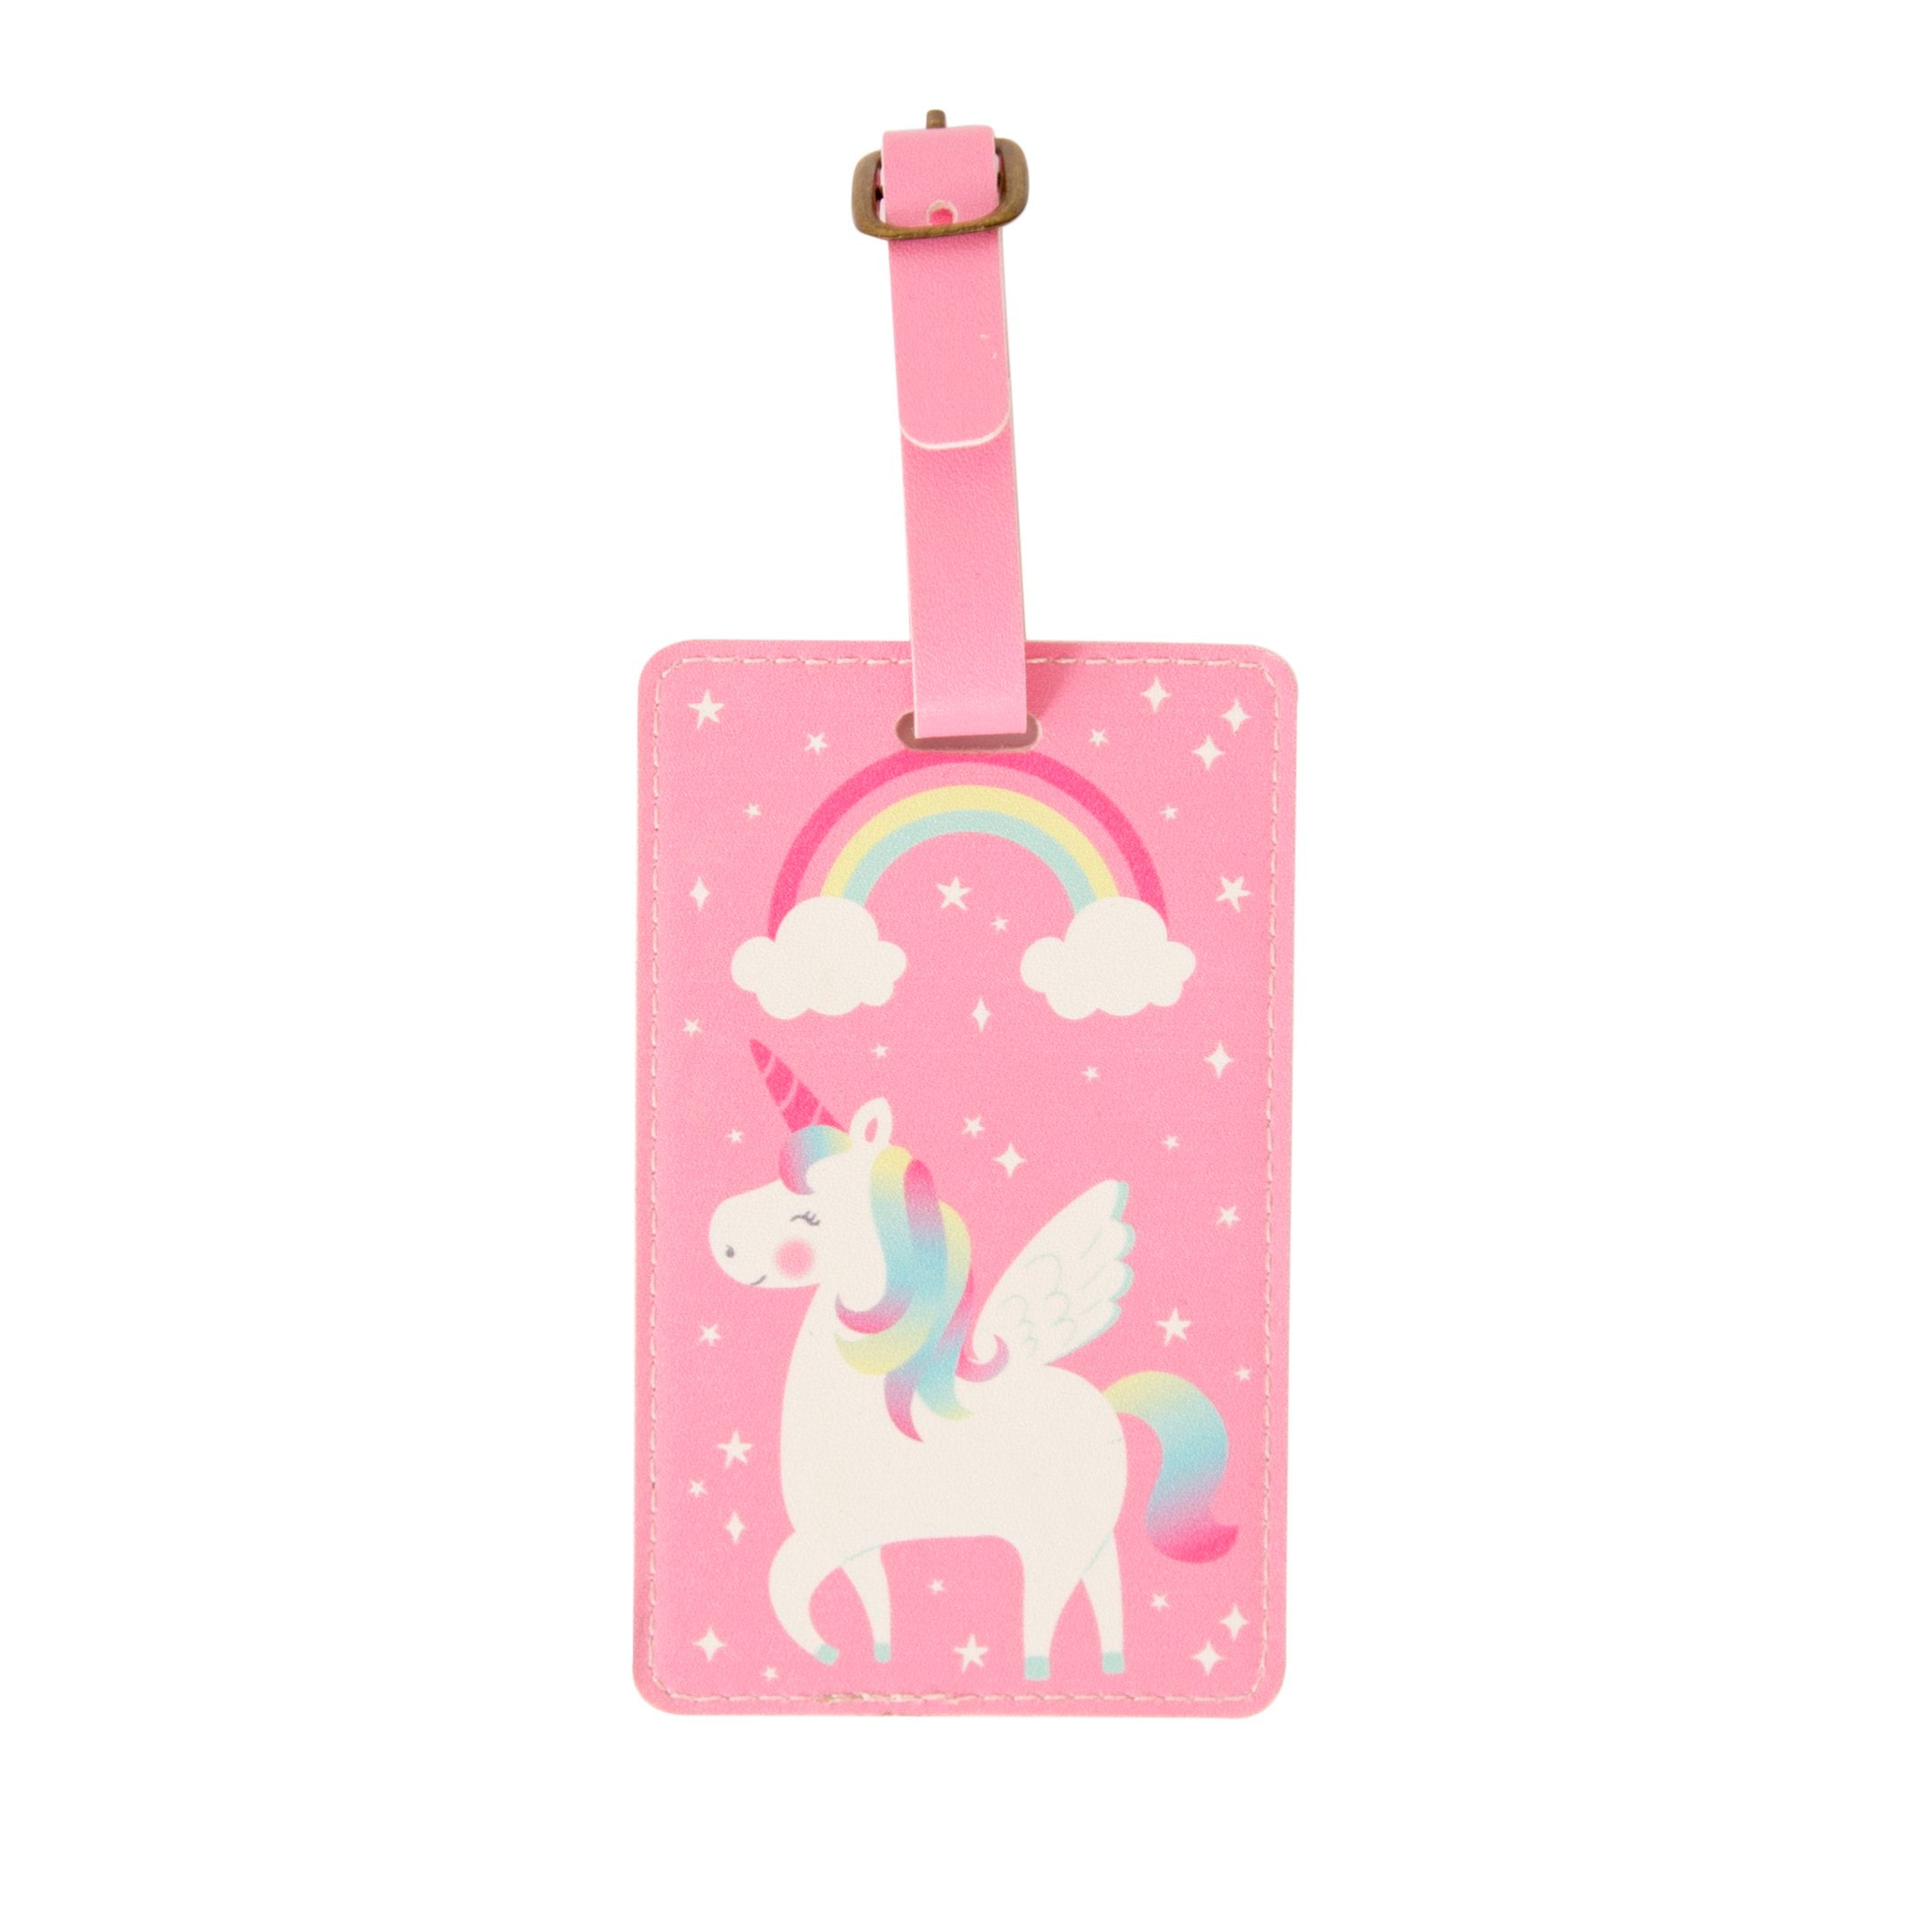 Rainbow Unicorn Luggage Tag - Wild Atlantic Living